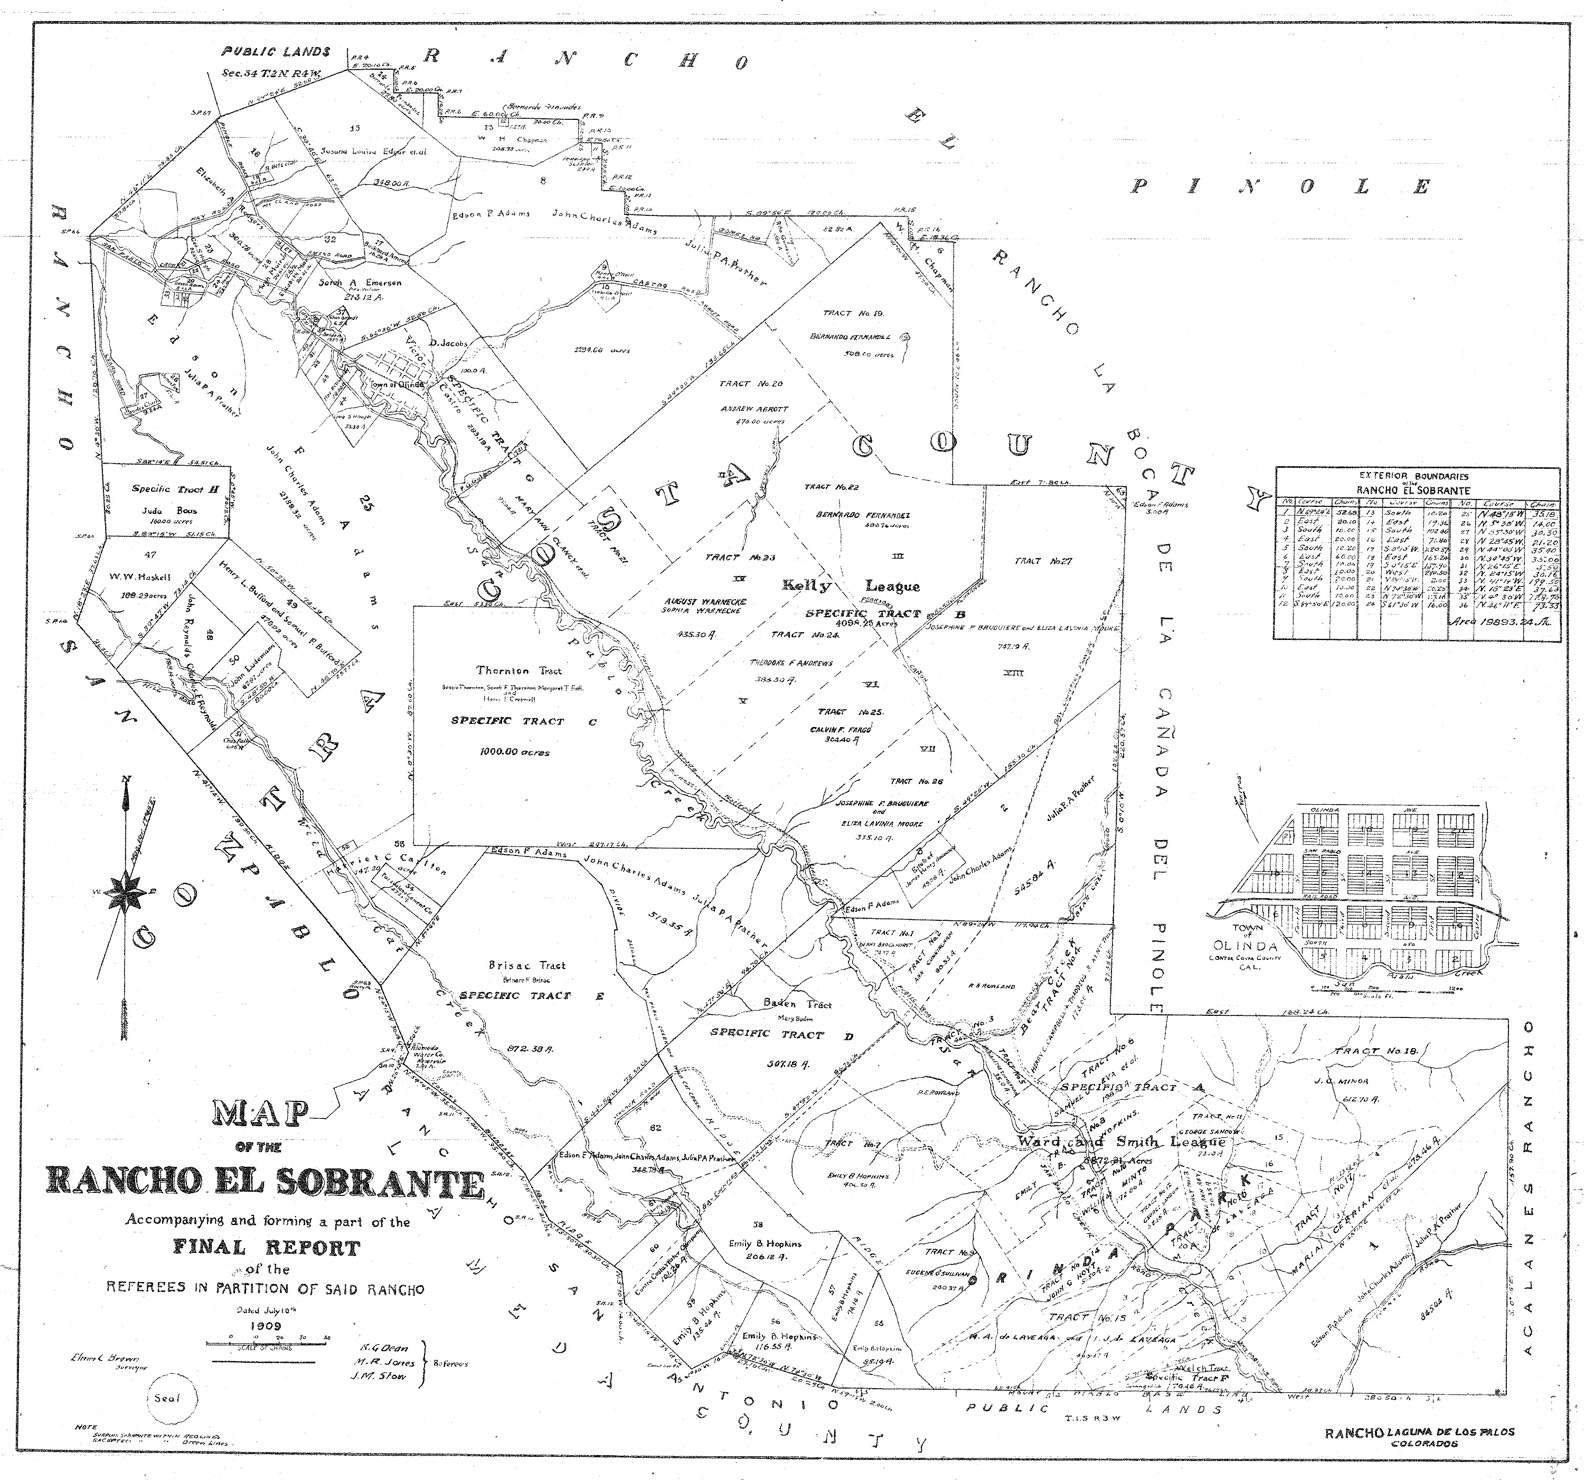 El Cerrito Historical Society History Of California 2nd Judicial Circuit Maps This Map Shows The Borders And Landowners In Rancho Sobrante As Set Down By Court At Close Final Case Regarding Land Ownership